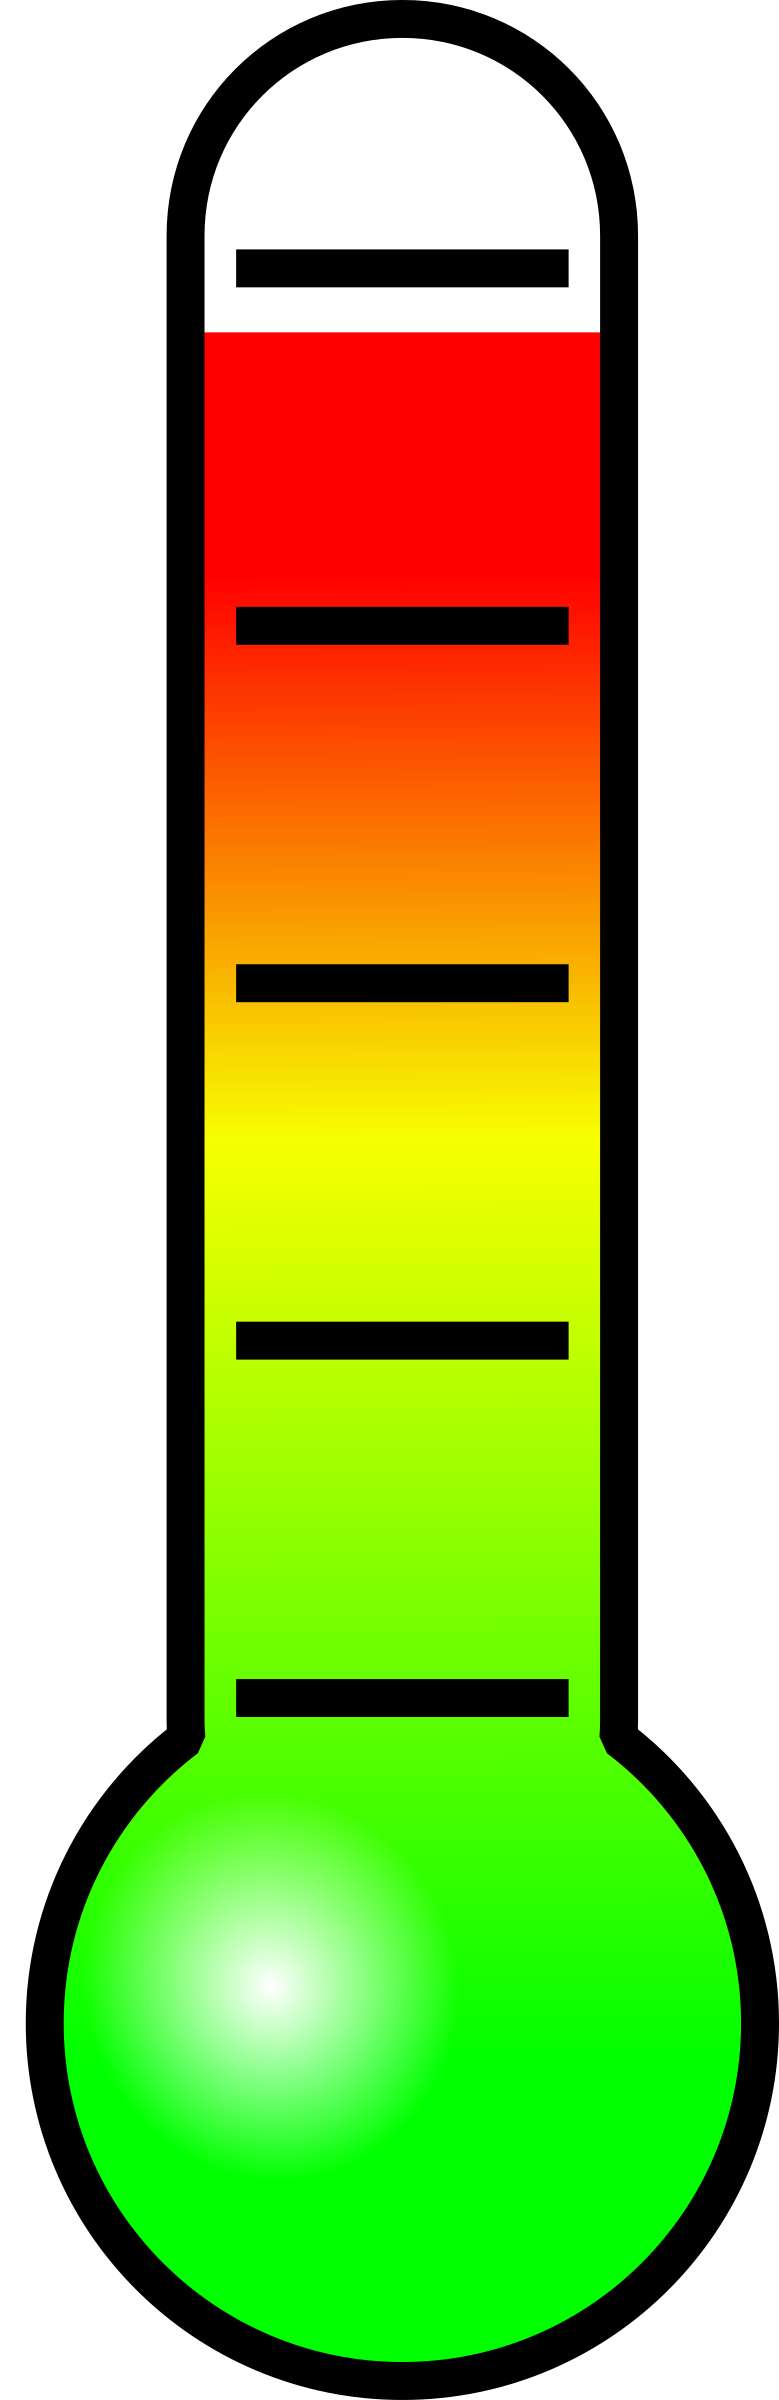 779x2400 Thermometer Clip Art 6 Image